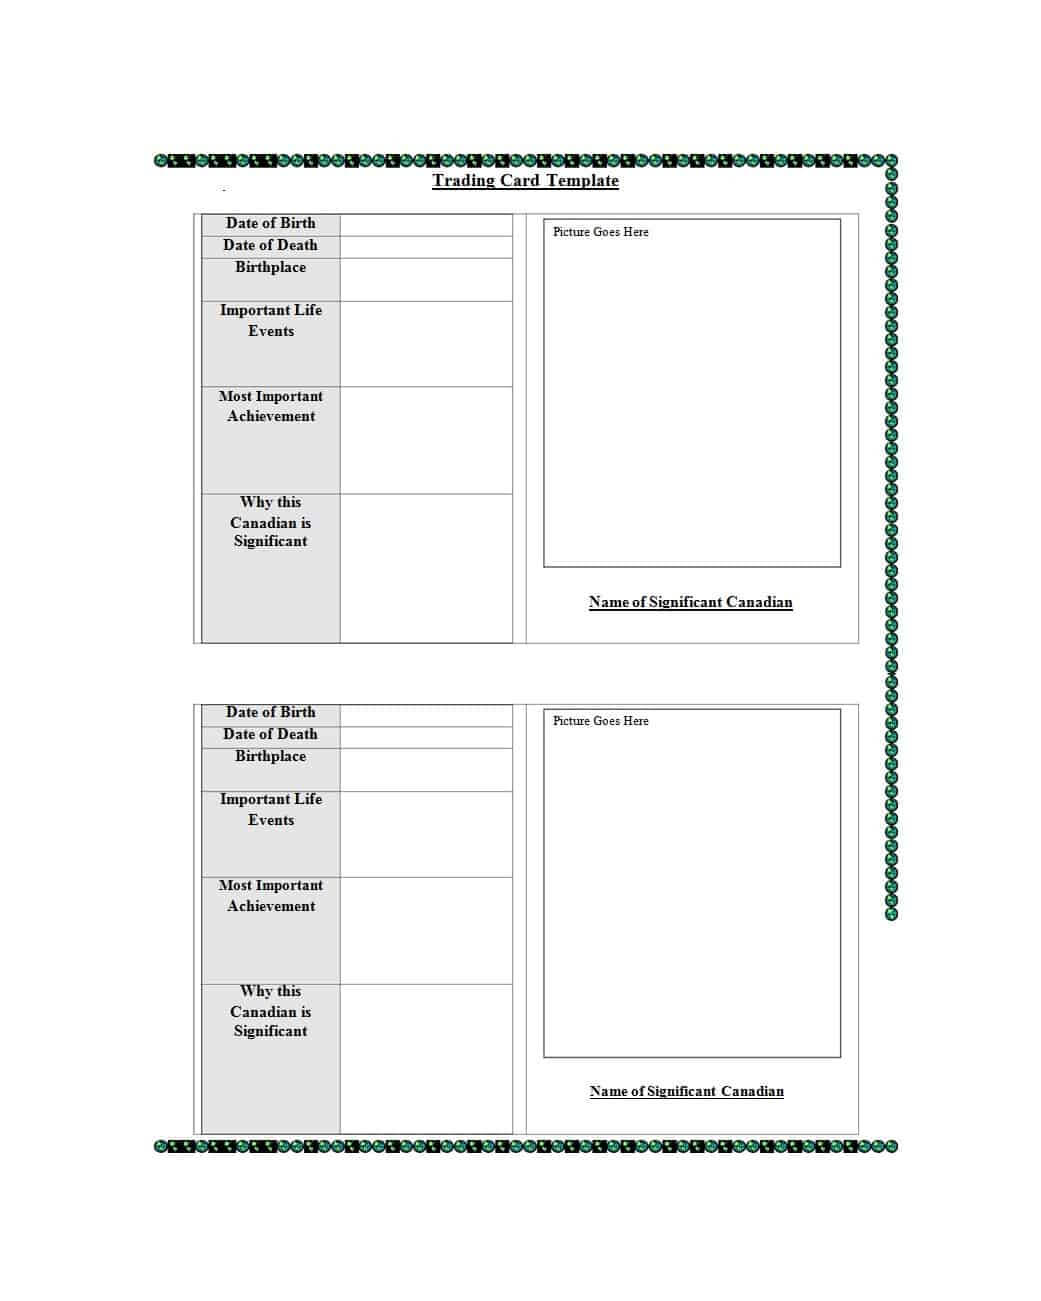 018 Printable Baseball Card Template Ideas Trading Wondrous Intended For Baseball Card Size Template